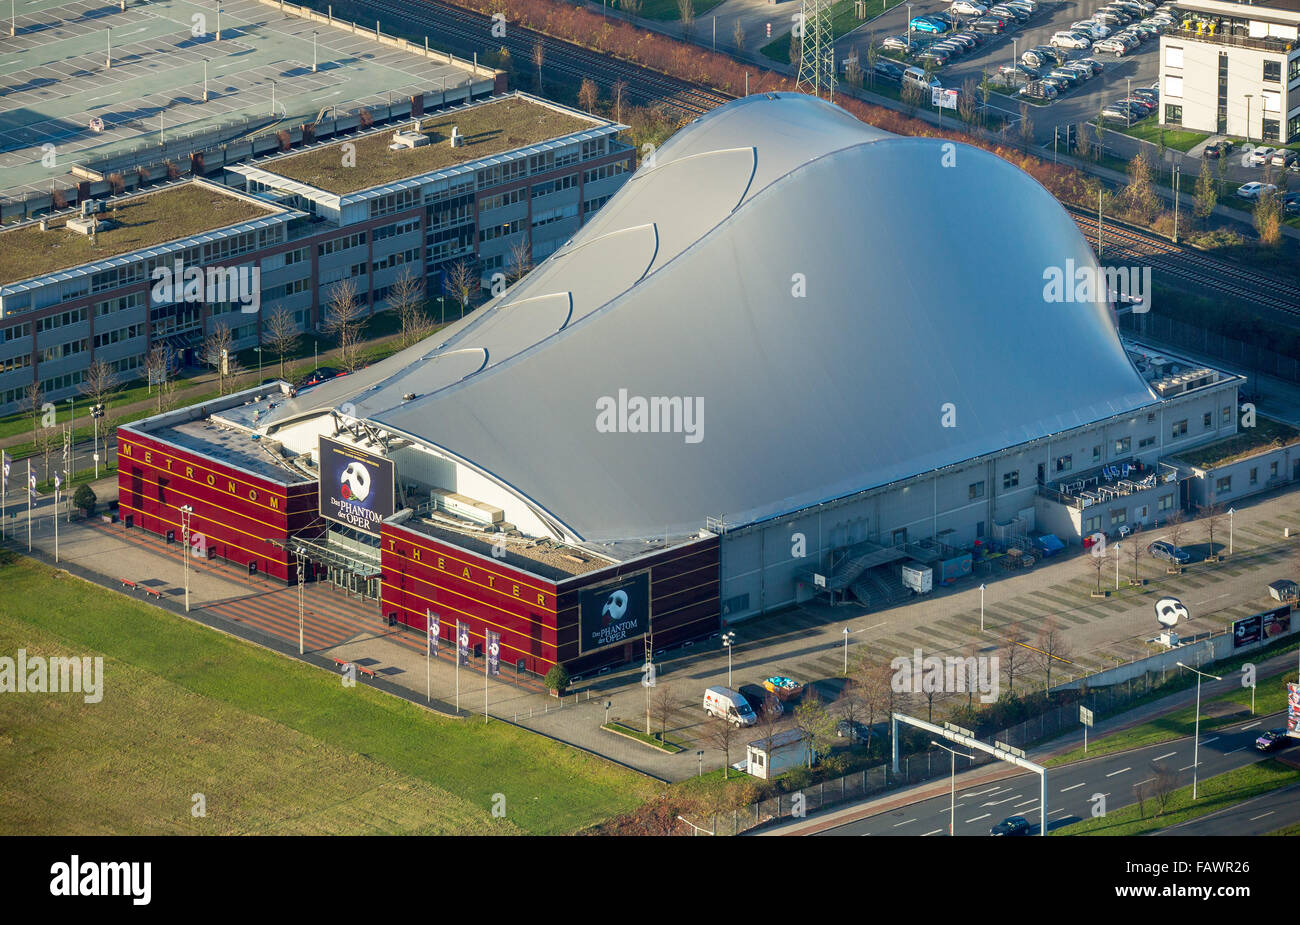 Metronom Theater, theater tent, Centro, Oberhausen, Ruhr district, North Rhine-Westphalia, Germany - Stock Image